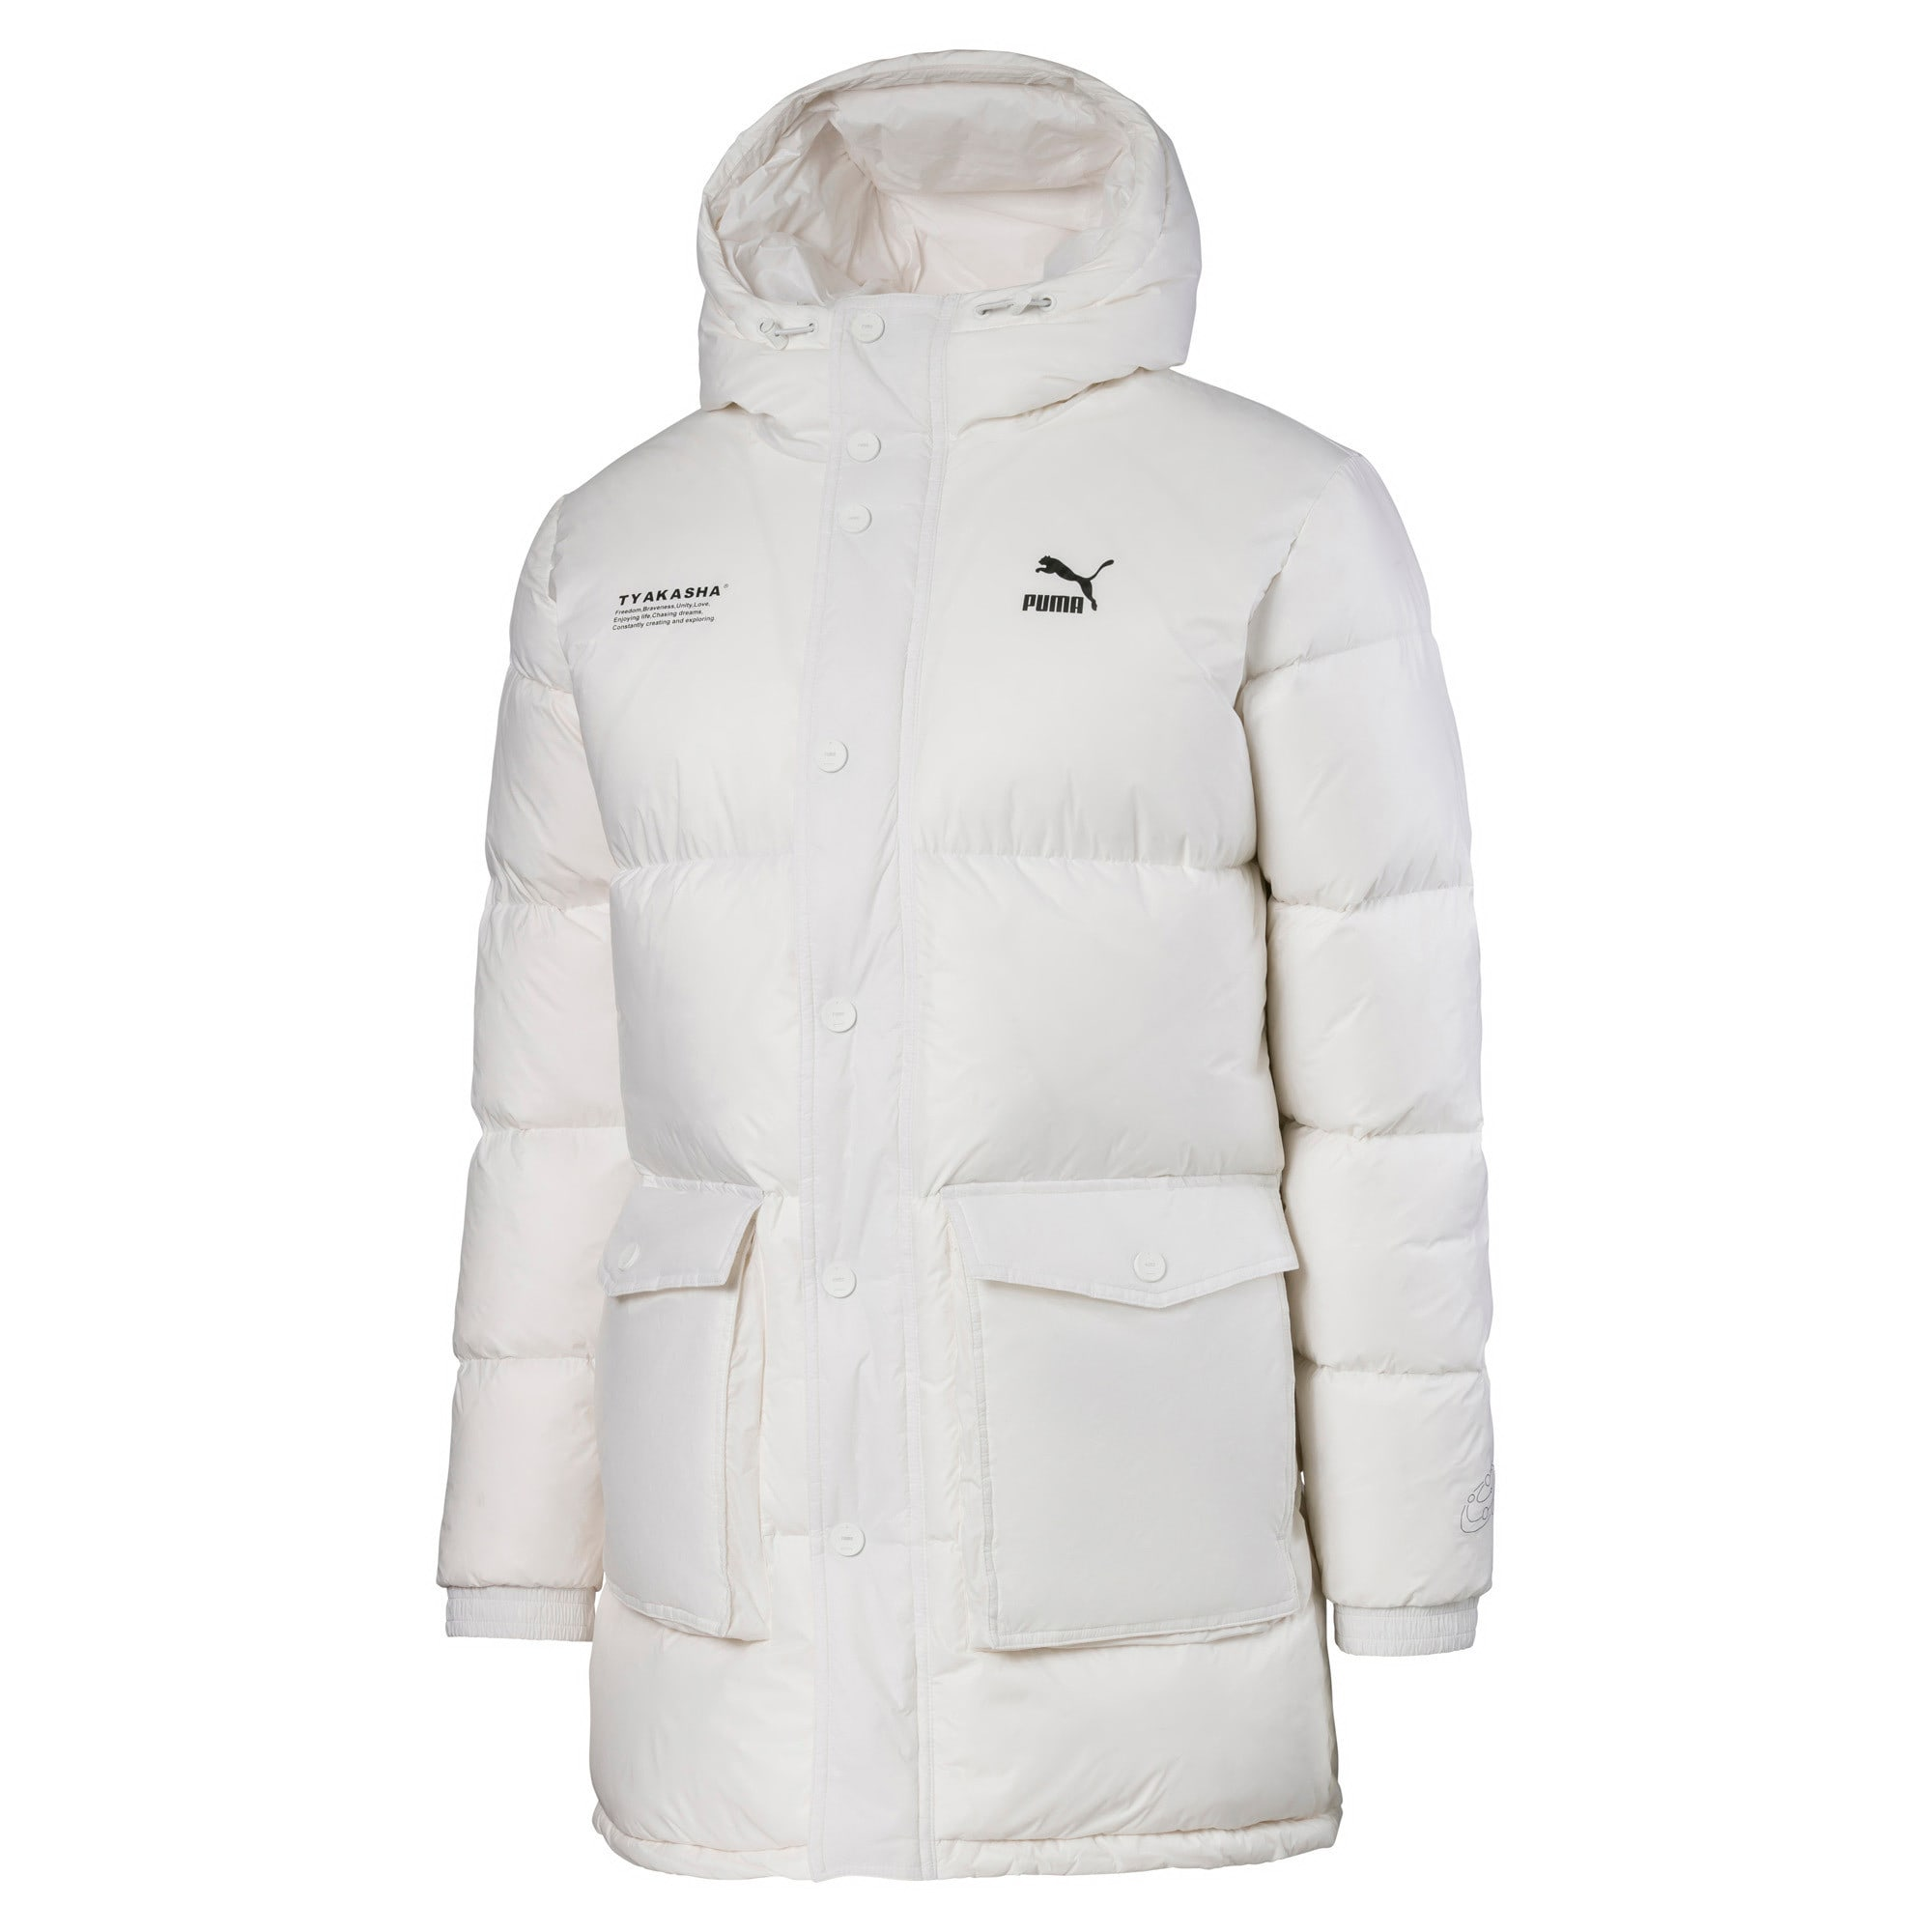 Thumbnail 1 of PUMA x TYAKASHA Down Parka, Puma White, medium